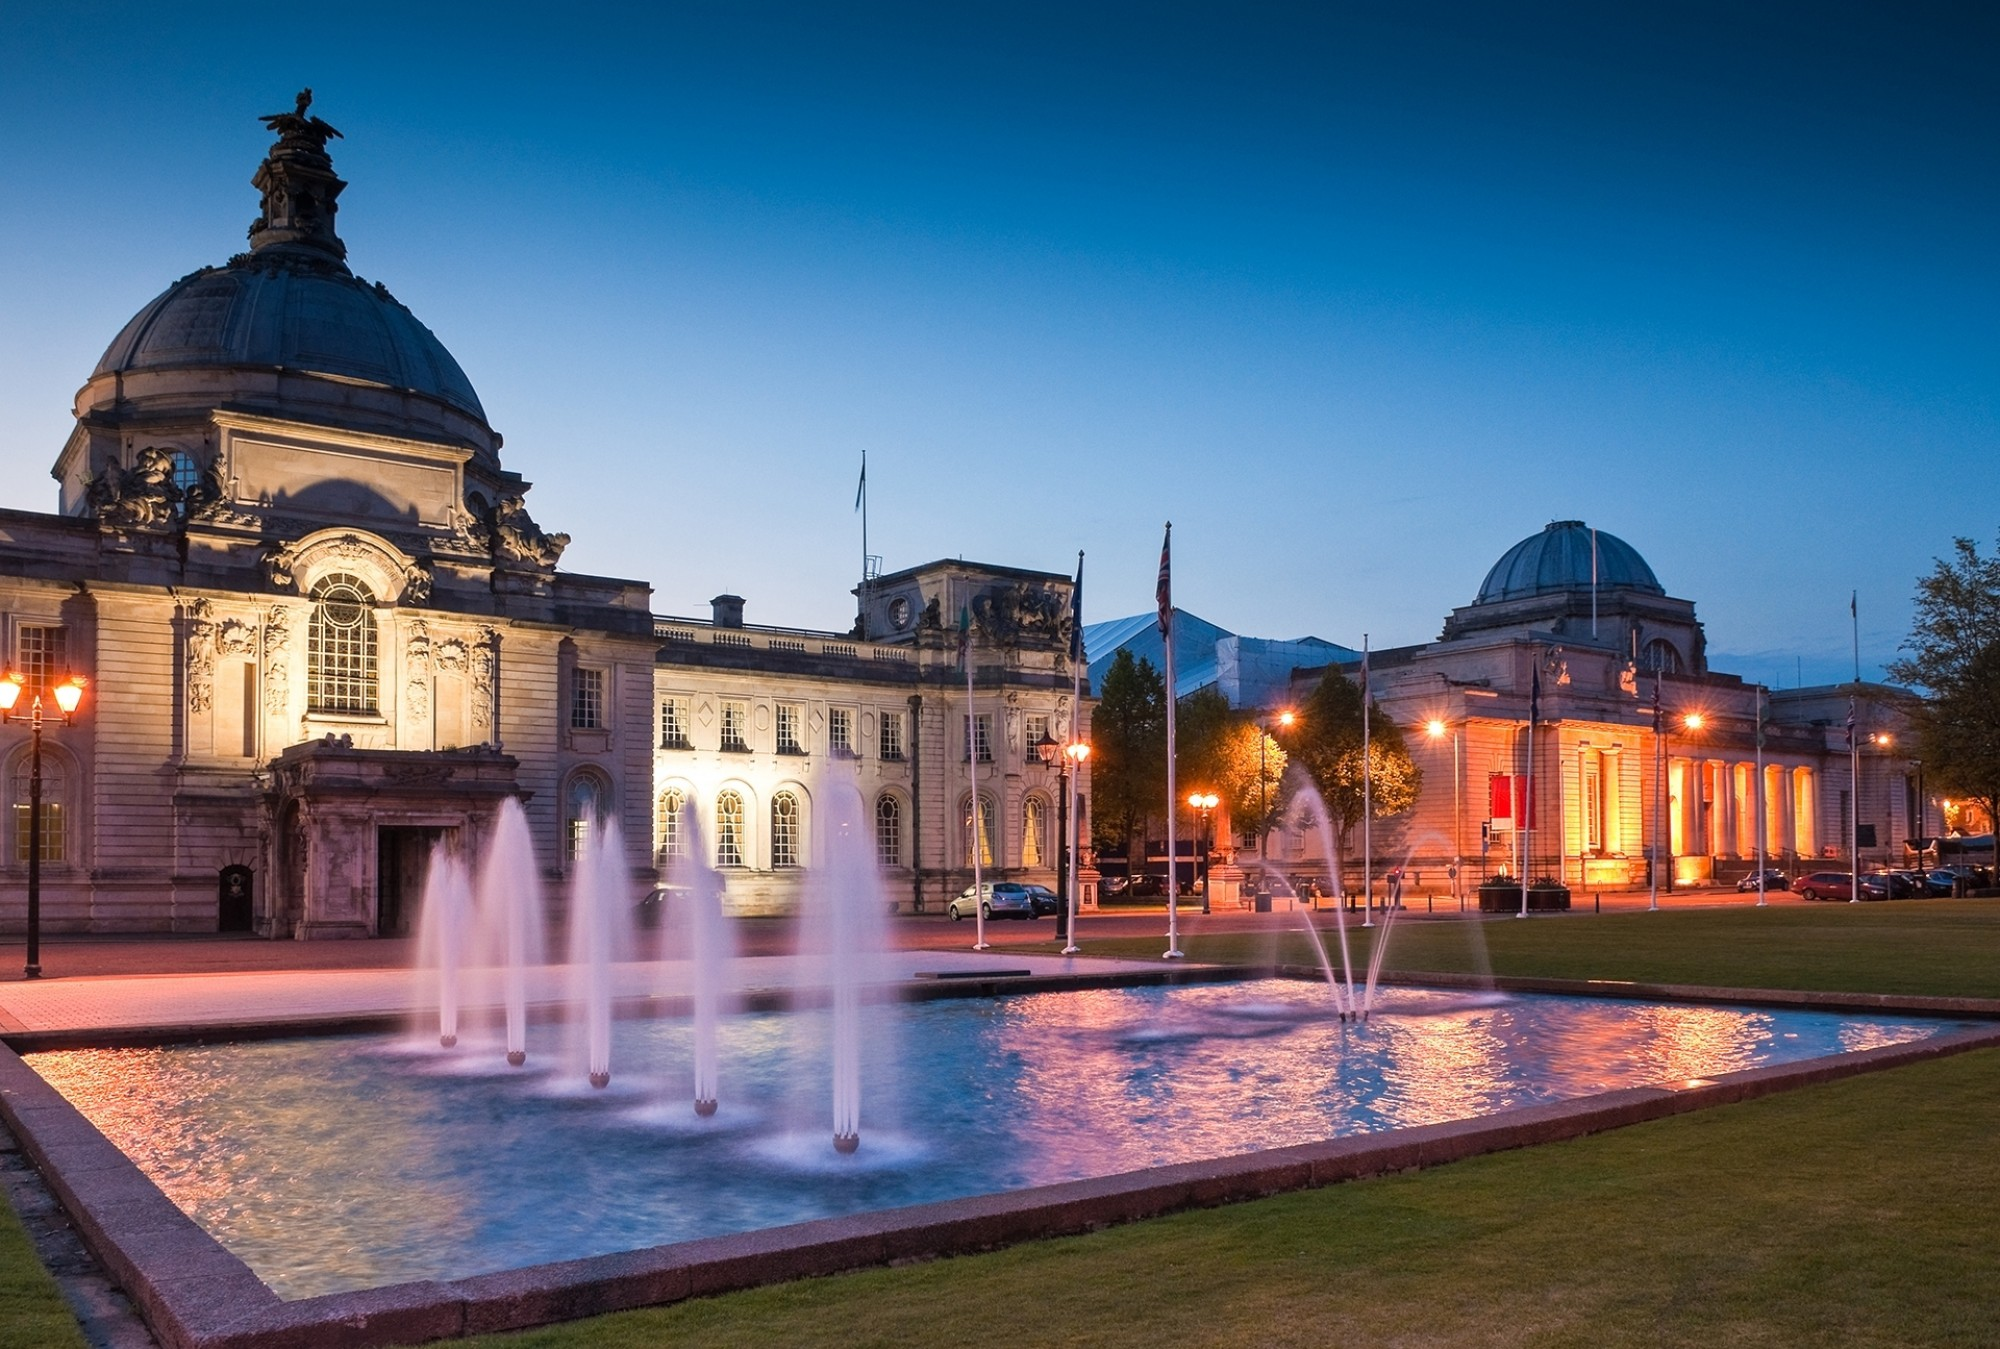 Cardiff-City-Hall-1906-and-fountains-at-night-in-the-heart-of-the-capital-city-Museum-to-the-right